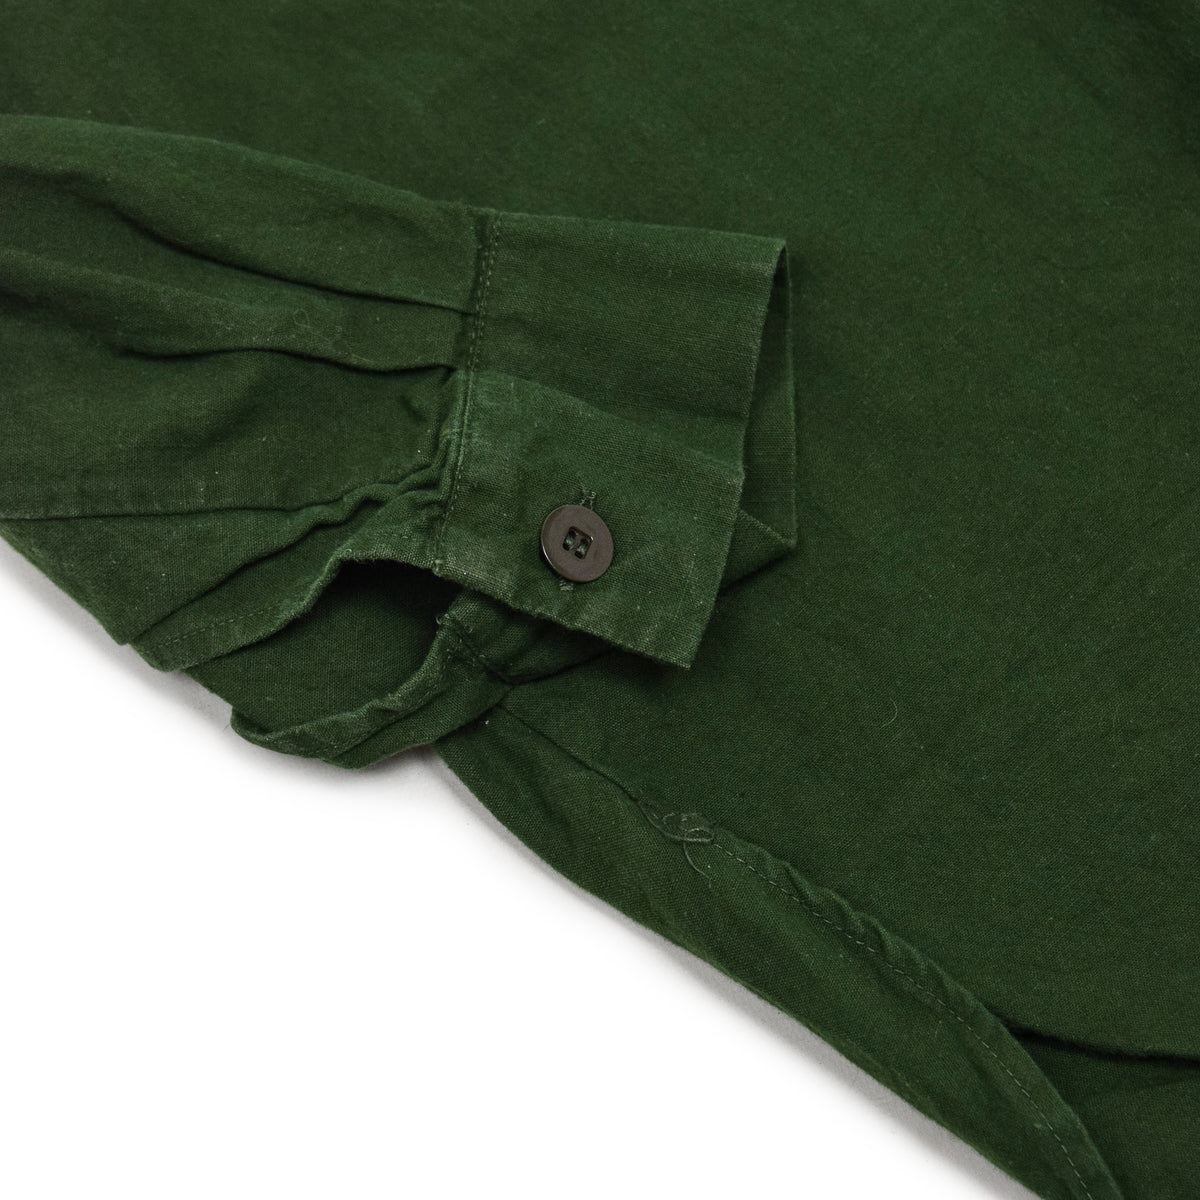 Vintage Swedish Military Overhead Smock Shirt Army Green M / L CUFF